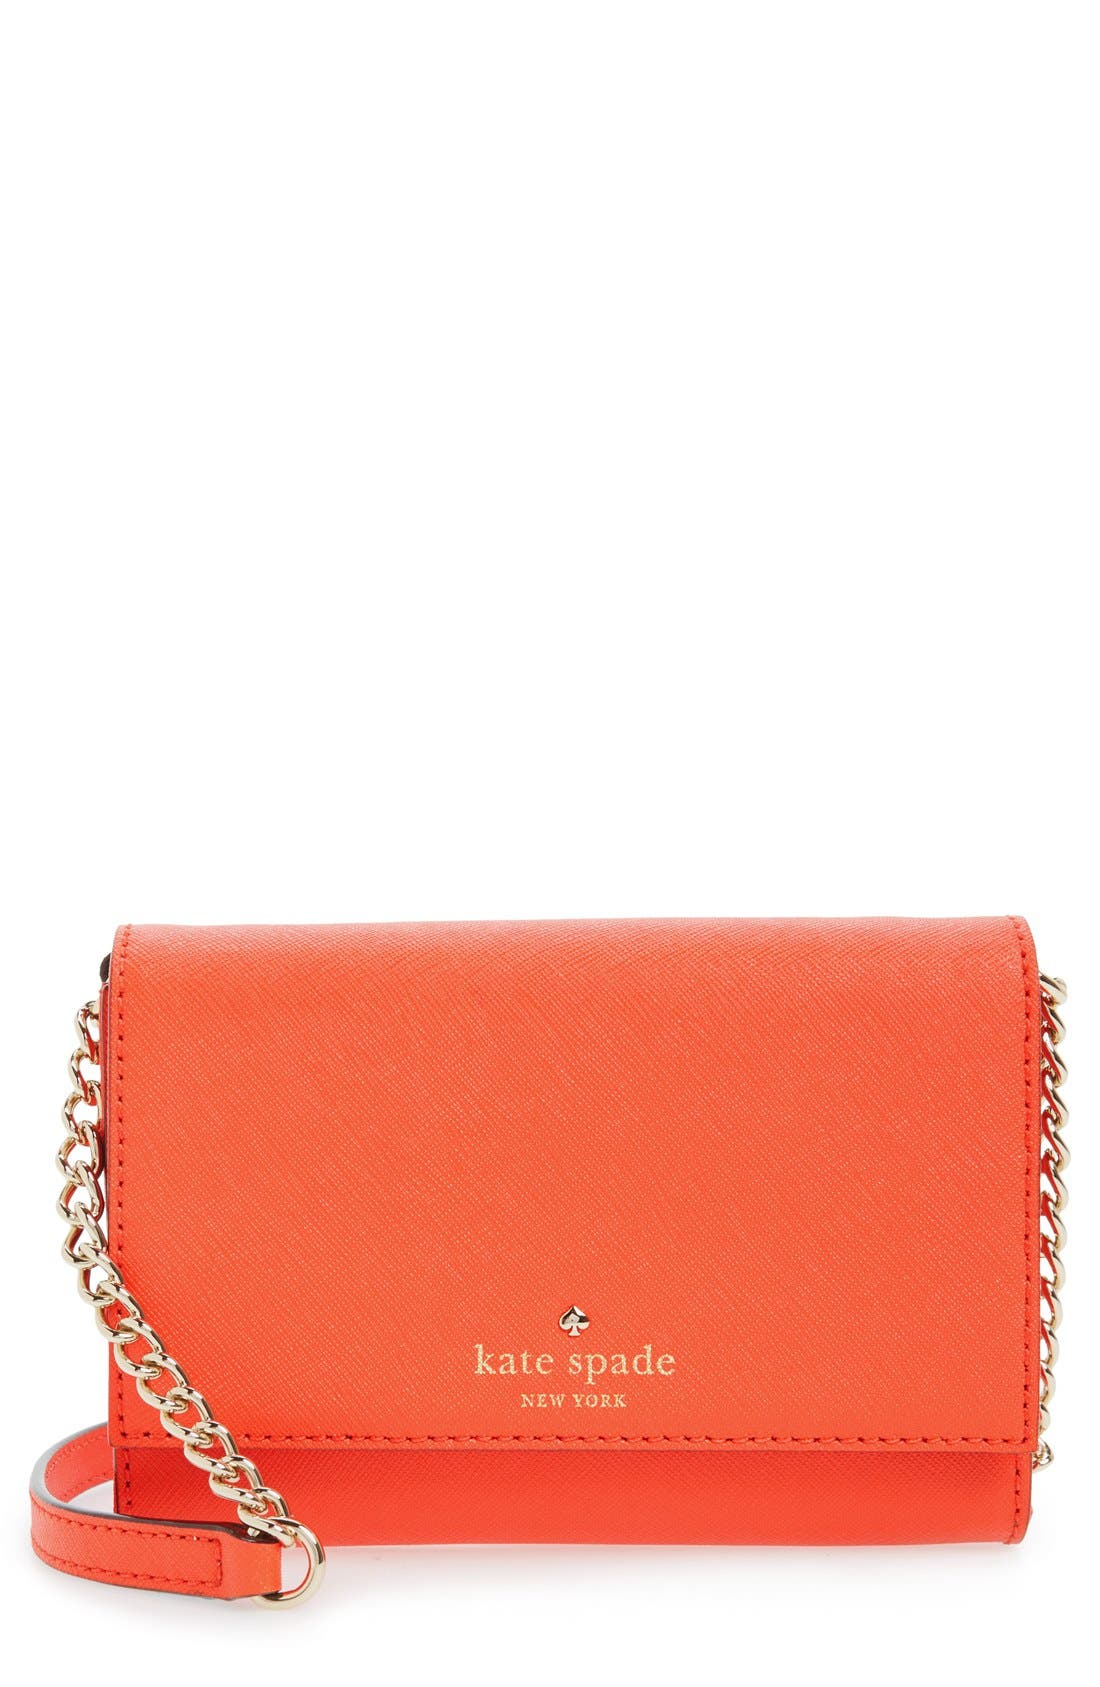 Alternate Image 1 Selected - kate spade new york 'cedar street - cami' crossbody bag